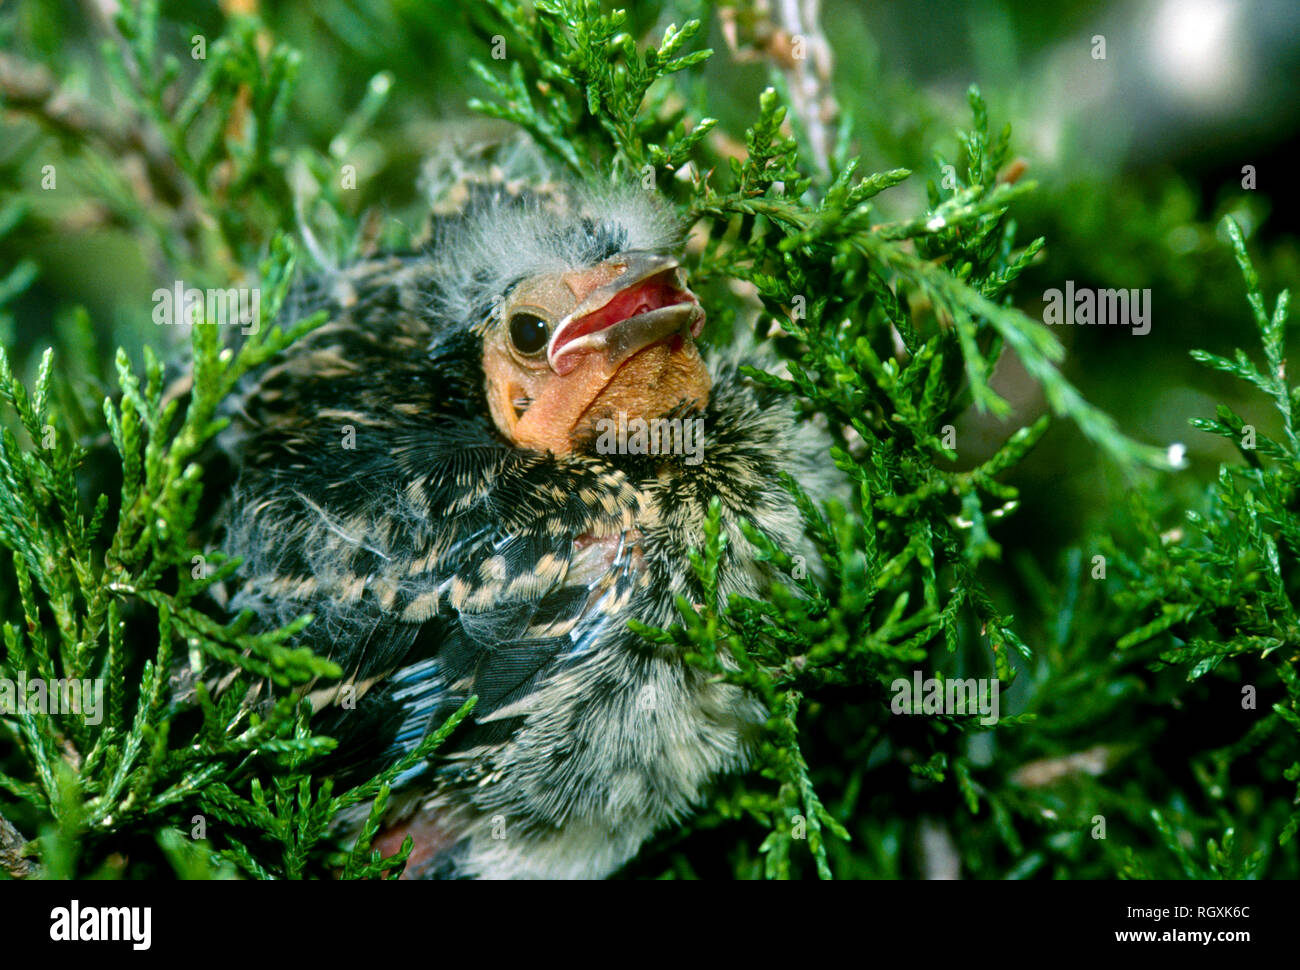 Fuzzy cute fledgling baby redwing blackbird on evergreen branch with mouth open, Midwest USA - Stock Image